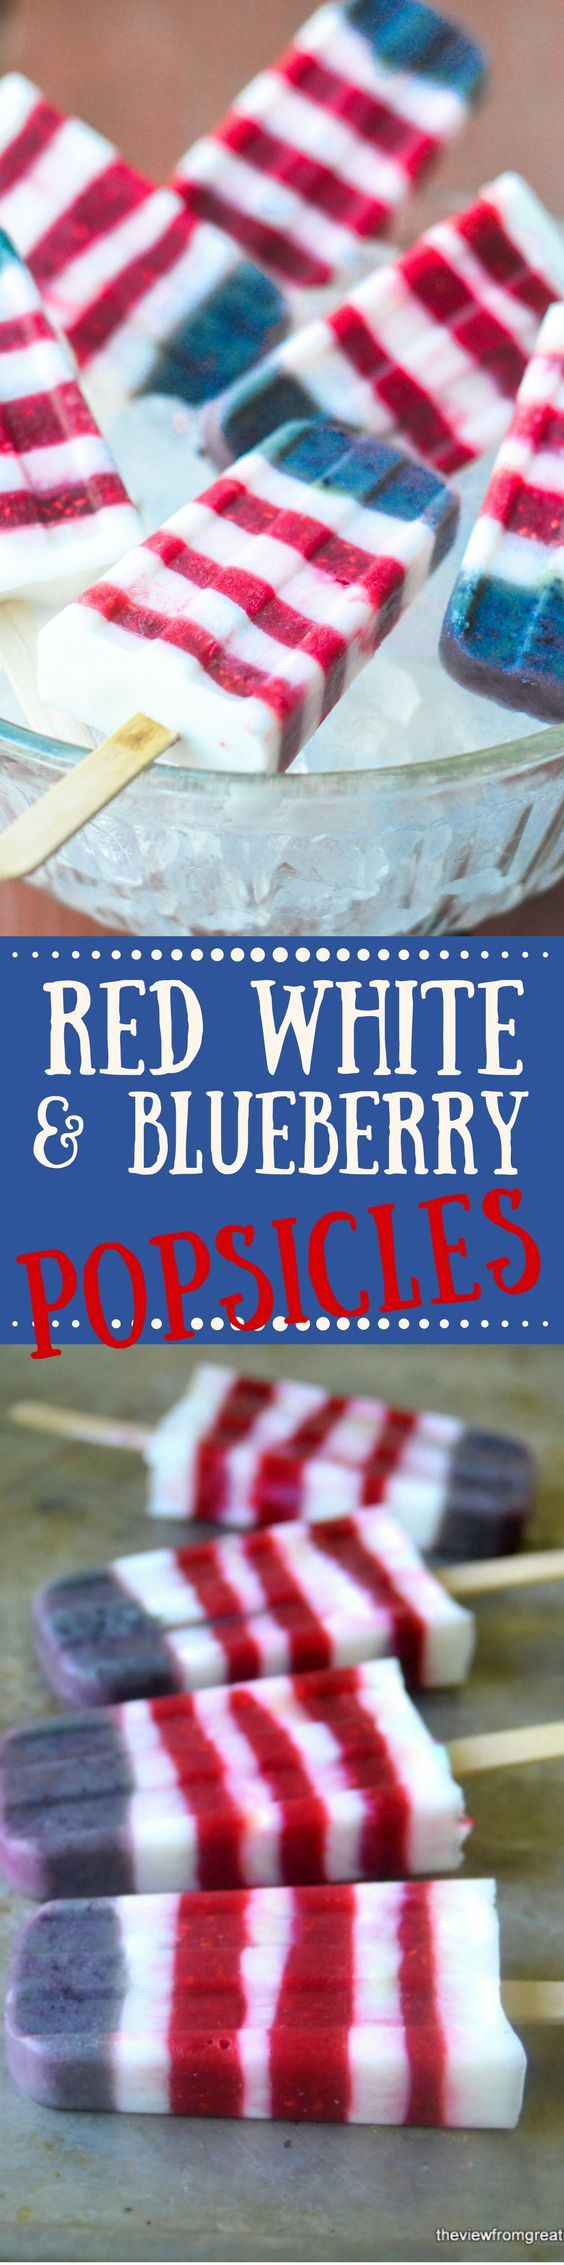 RED WHITE AND BLUEBERRY YOGURT POPSICLES are a refreshing and delicous way to show your colors ~ kids of all ages loves these healthy frozen treats! |4th of July | Patriotic | ice cream | Memorial Day |